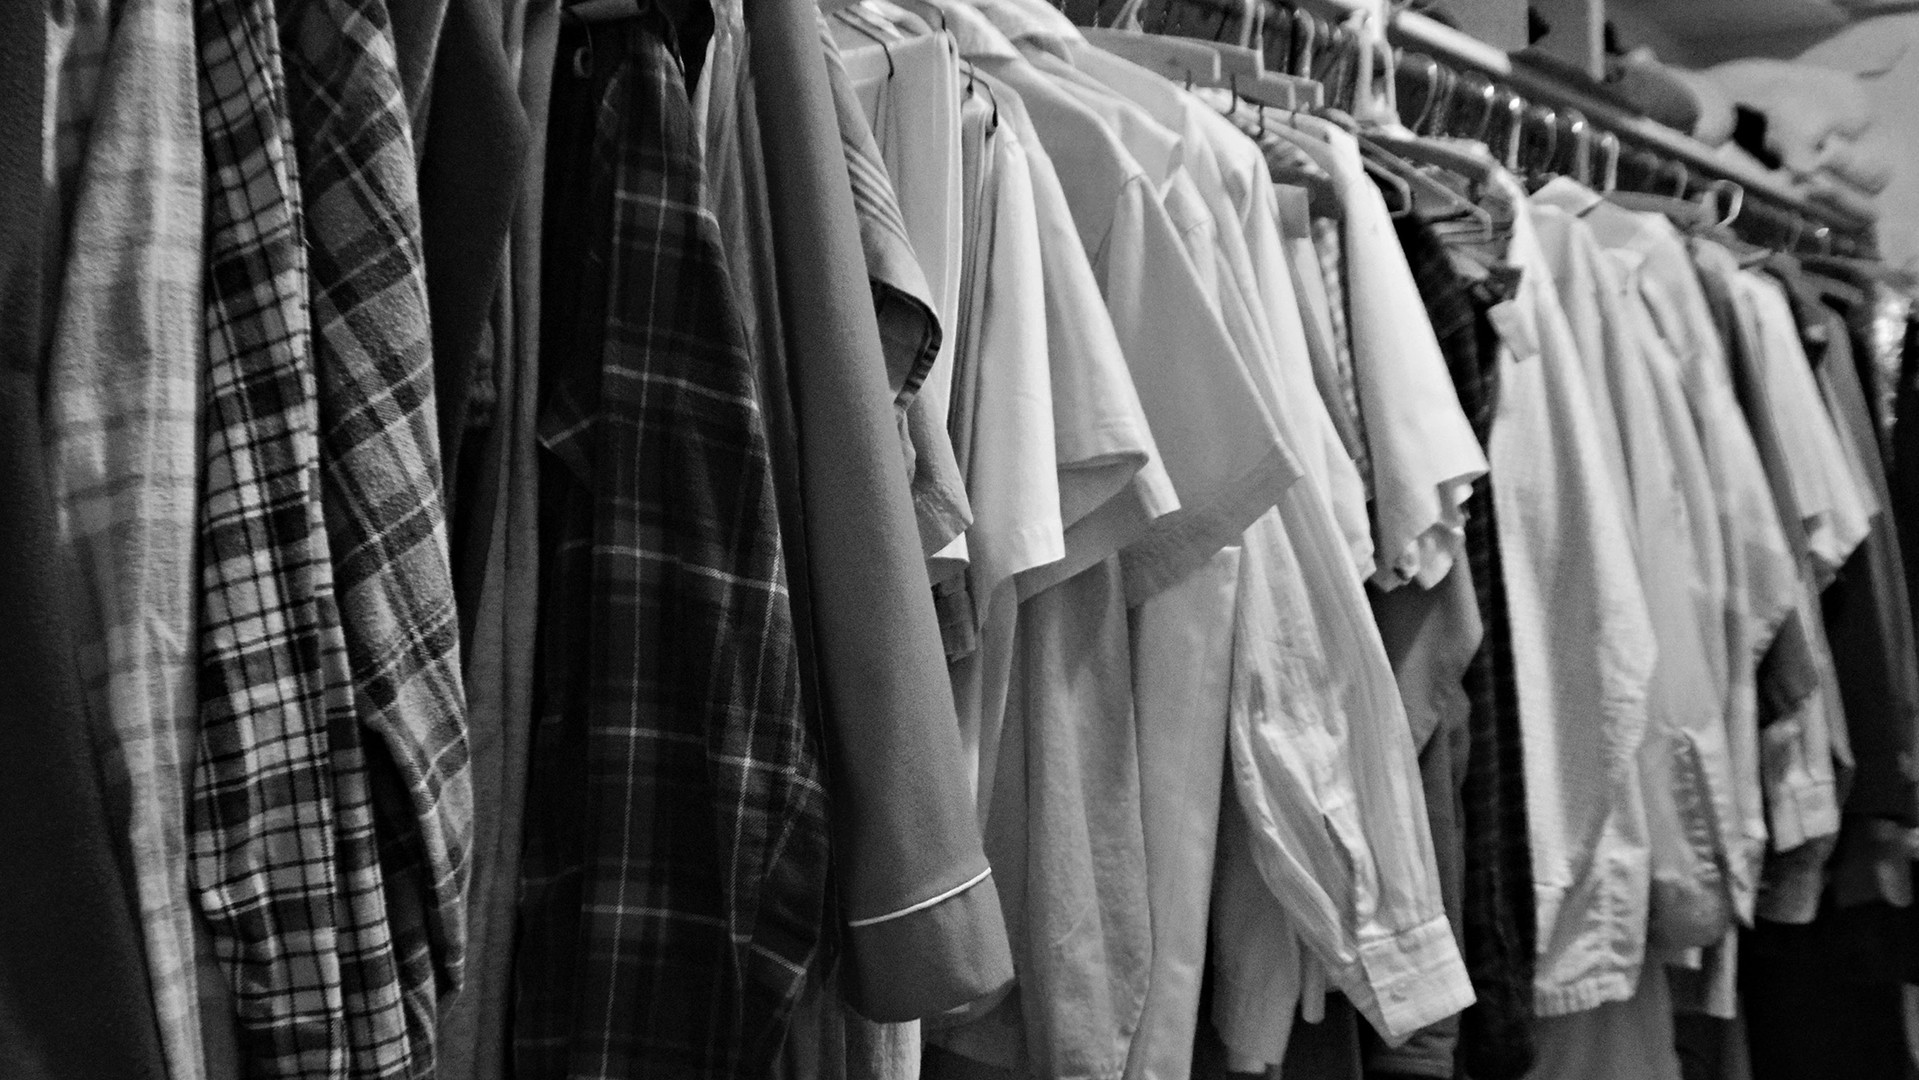 These-Clothes-Are-Not-Mine-Katie-Benson.